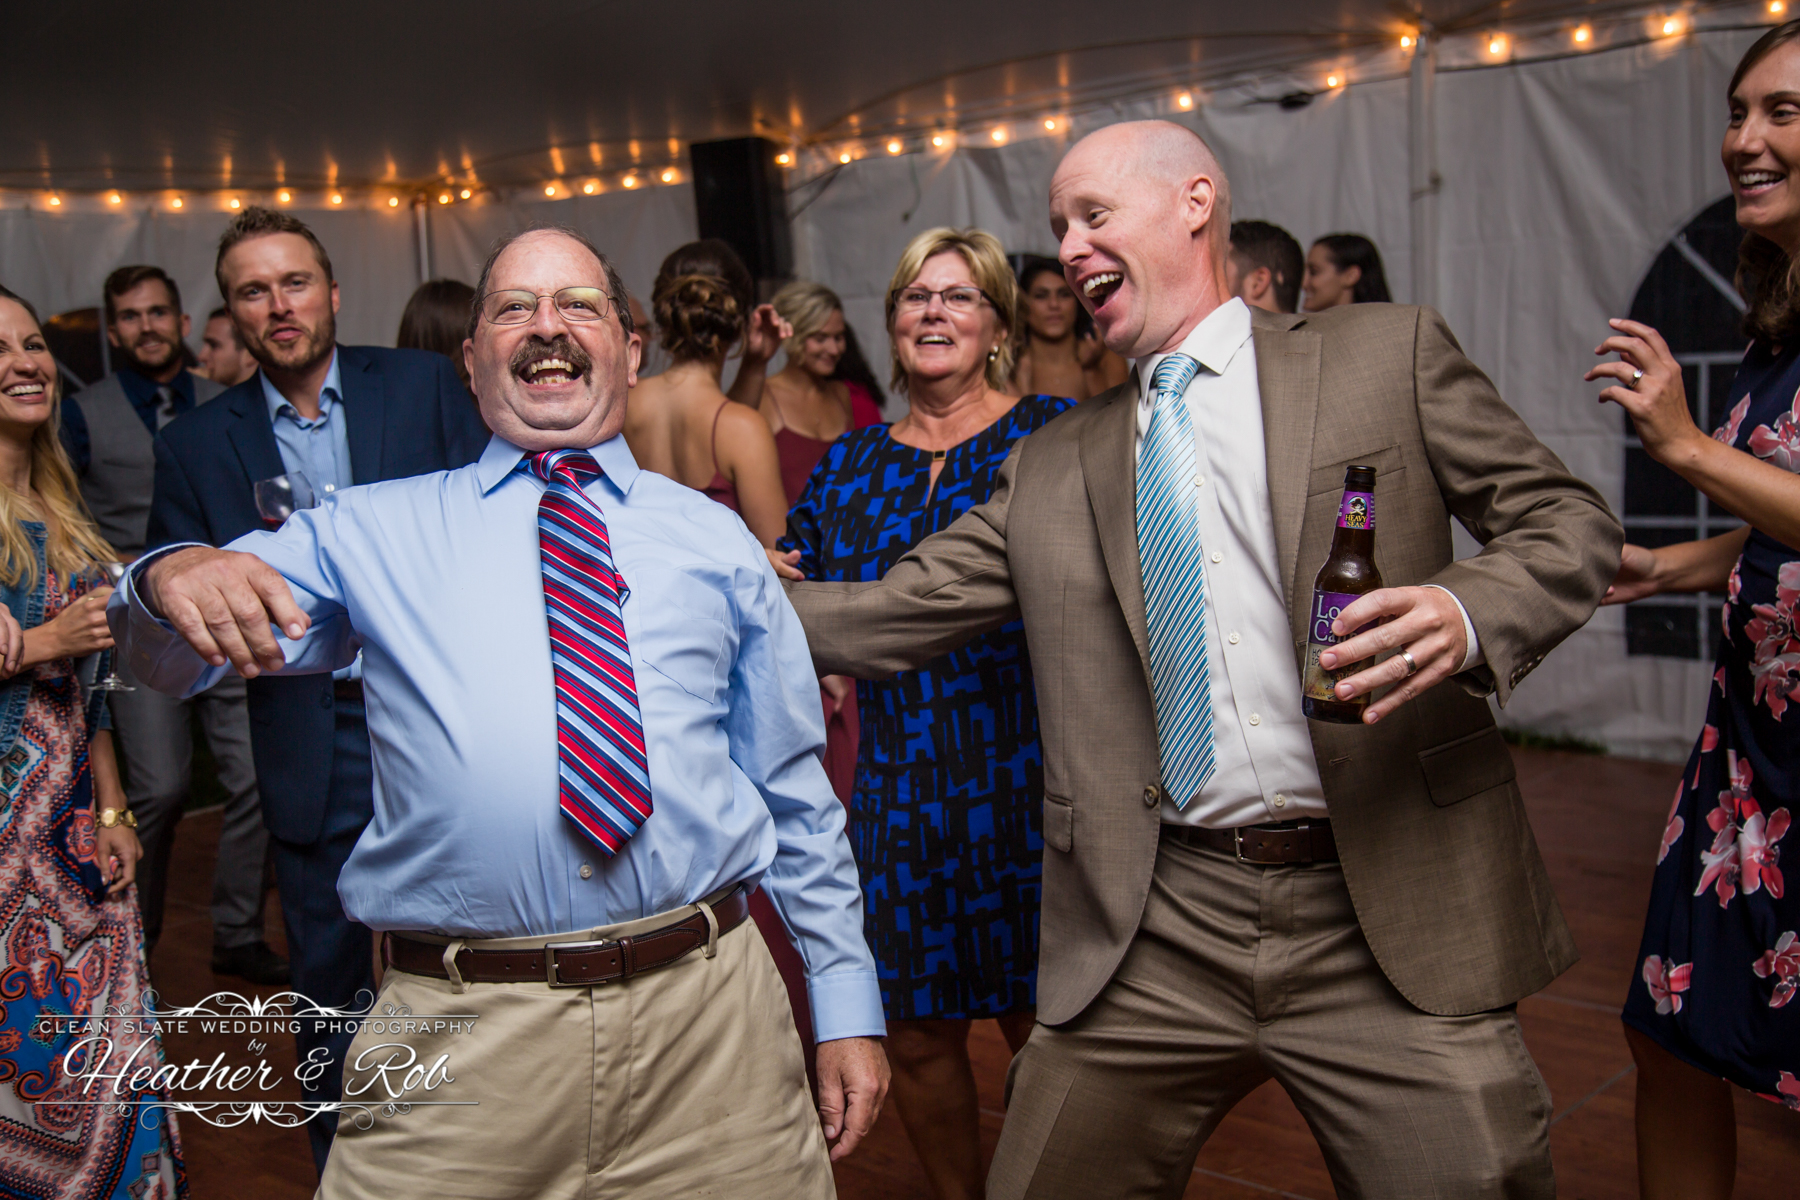 guys and wedding guests laughing and dancing